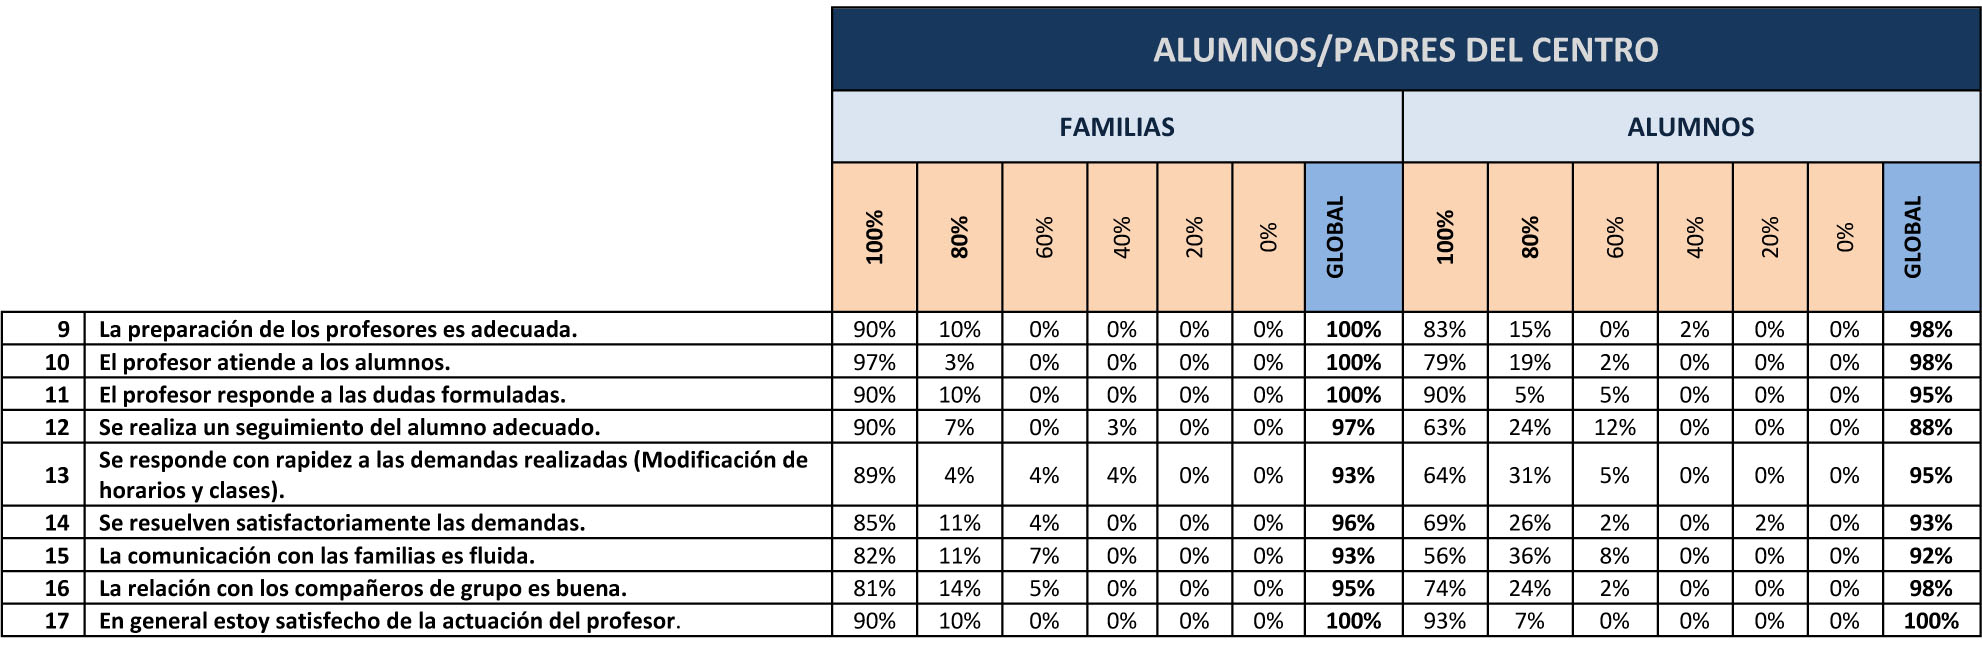 Microsoft Word - INFORME ENCUESTAS 2014 IVONNE definitivo2[1].do